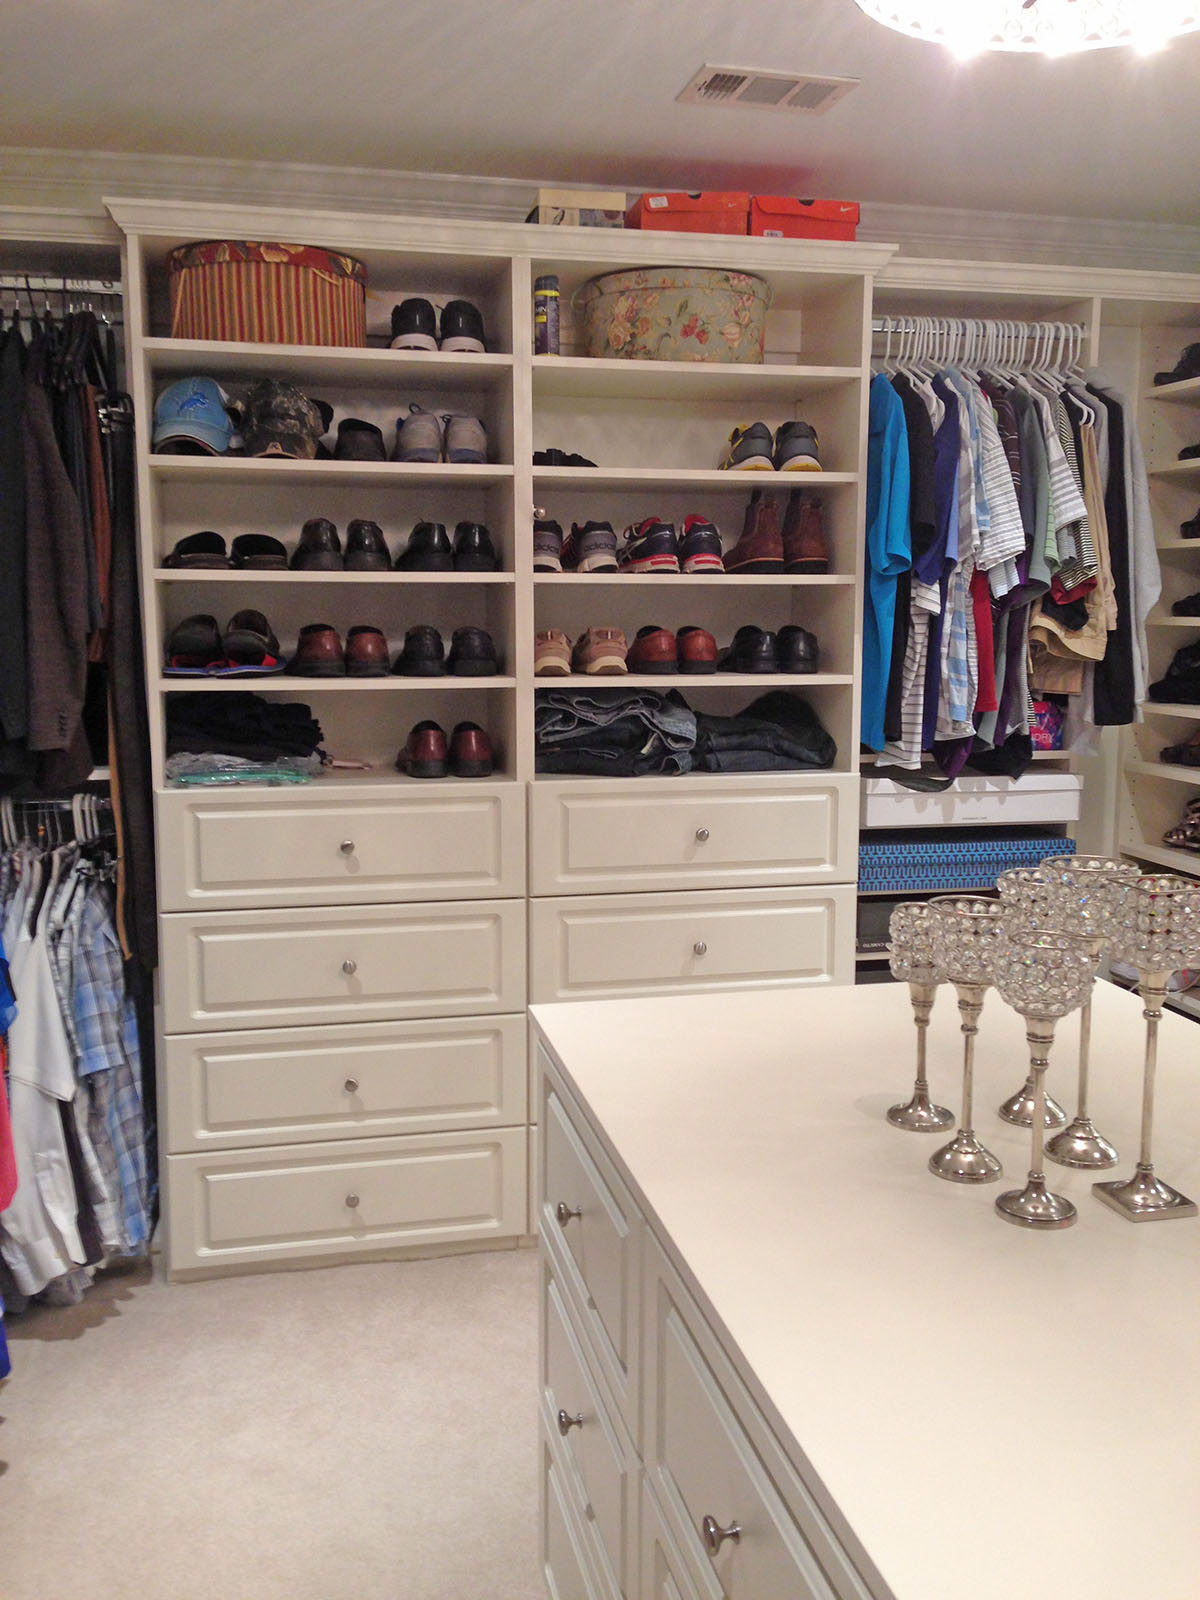 Gallery Custom Closets Garages Offices Pantries Georgia With Closet Island.